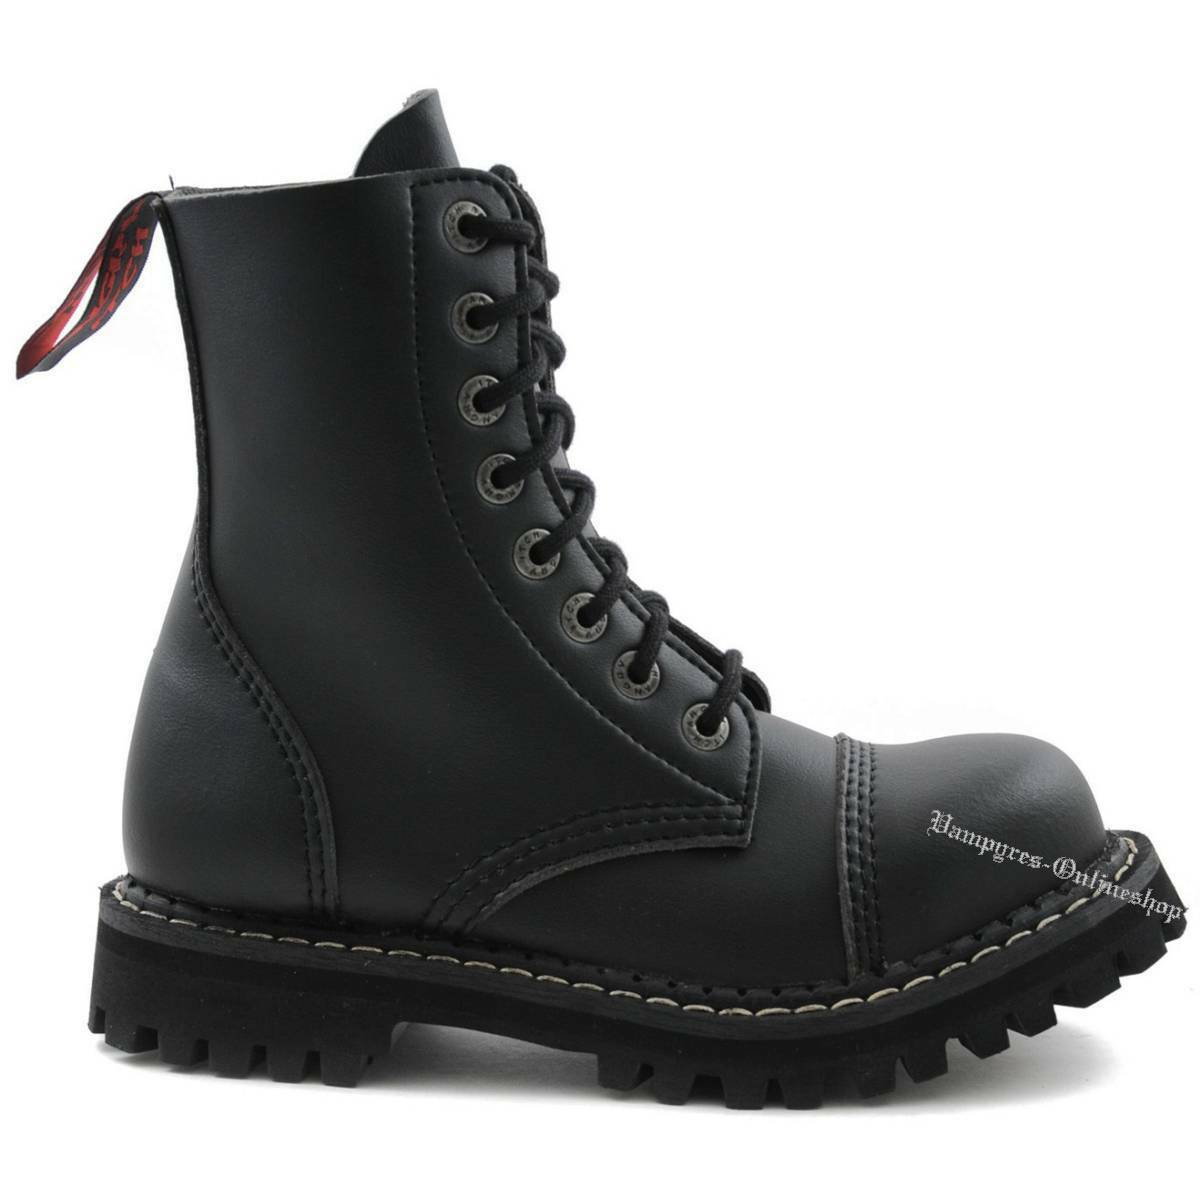 Angry Itch 8-Loch Vegan Negro Rangers Stiefel Zapatos botas Stahlkappen Stahlkappen Stahlkappen Negro 1a8f9e